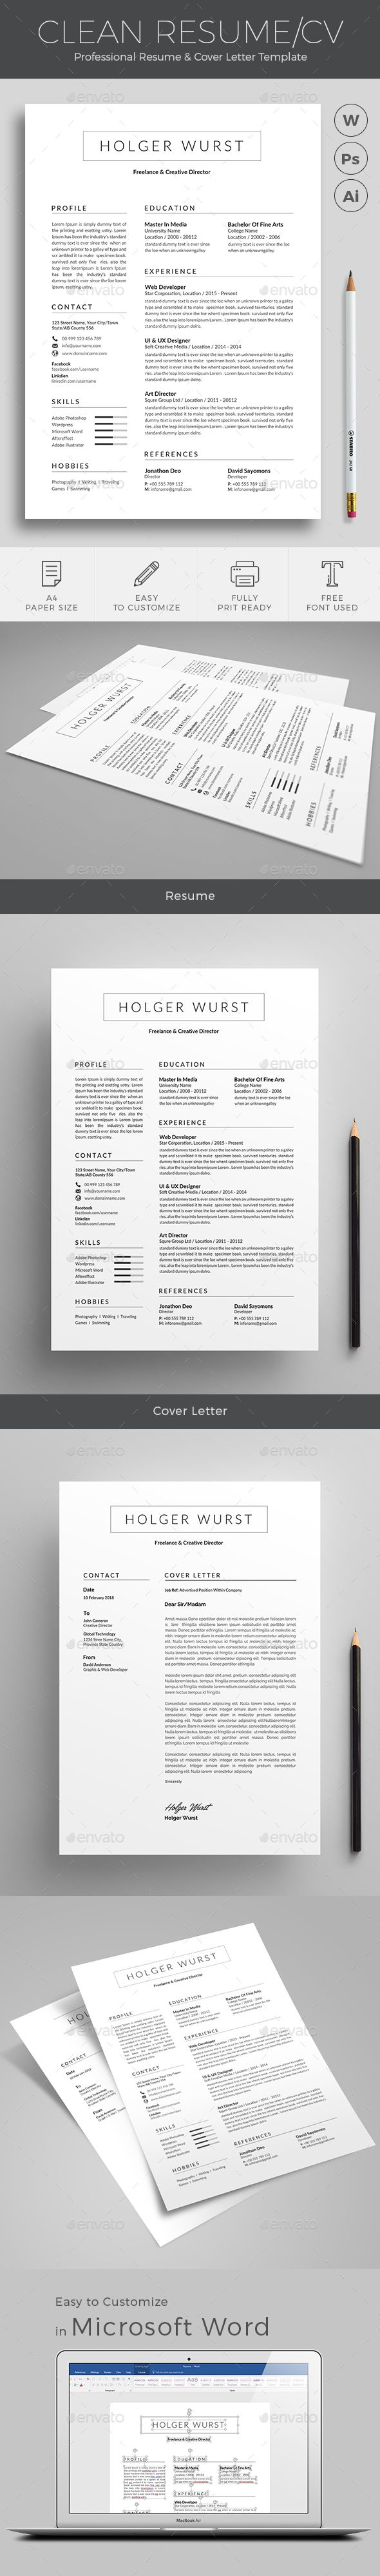 Wonderful Resume Format Font Style And Size Photos - Professional ...